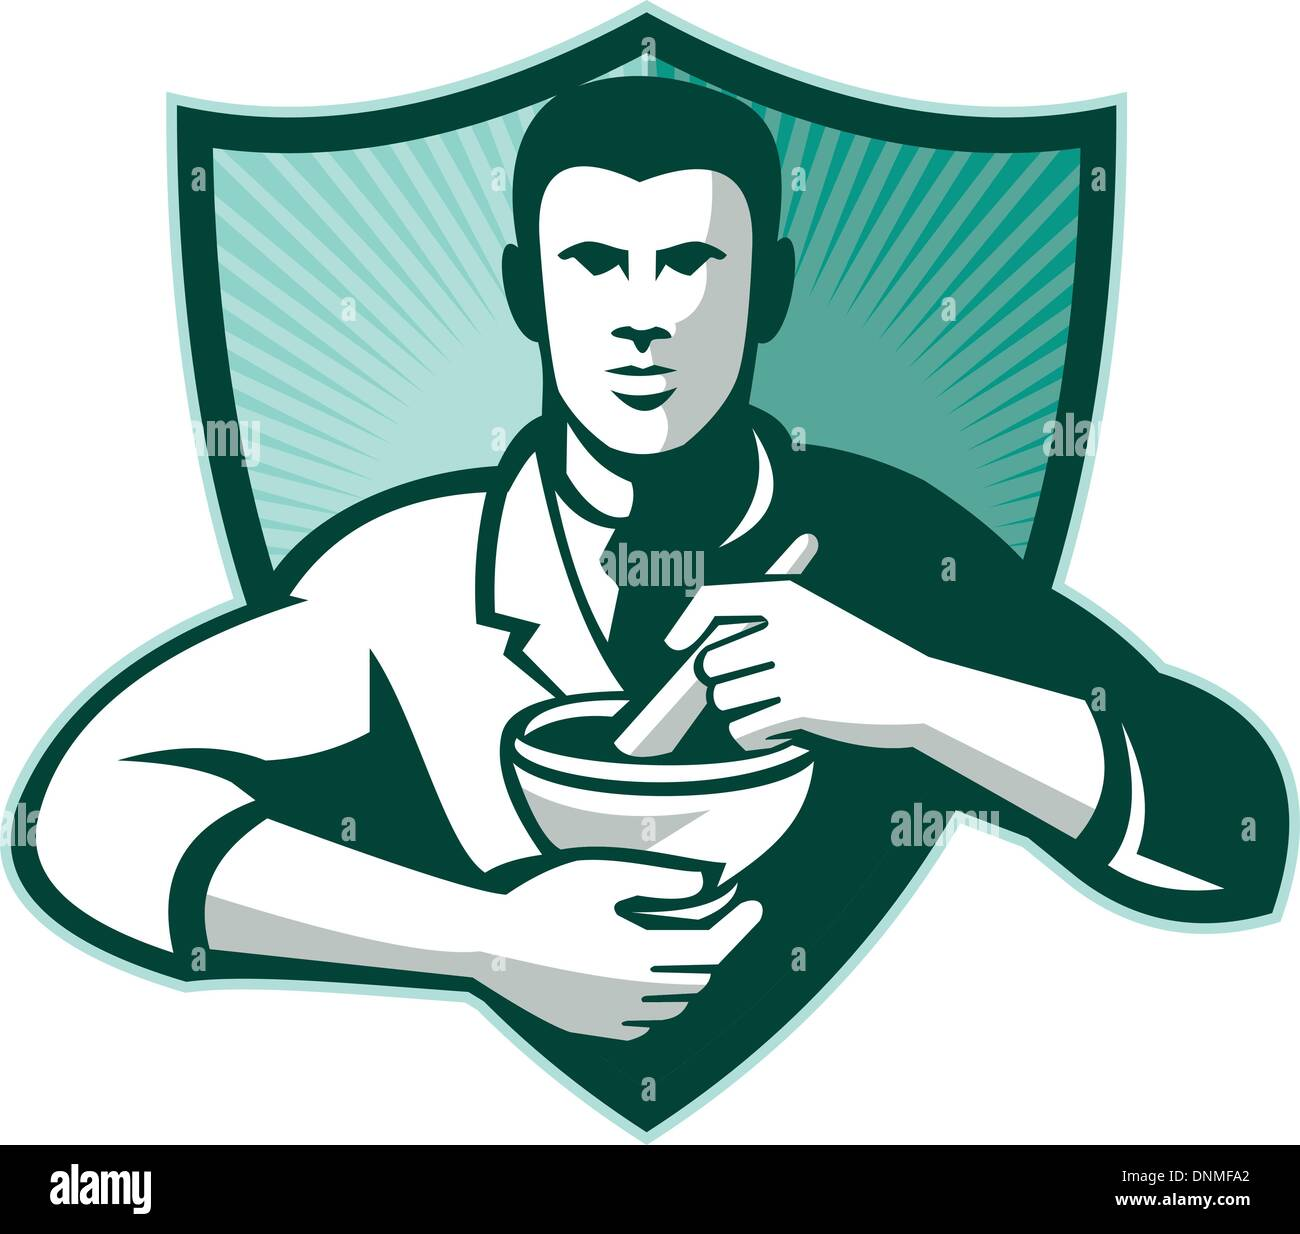 Retro style illustration of a pharmacist chemist worker mixing medicine with mortar and pestle viewed from front set inside shield. - Stock Vector